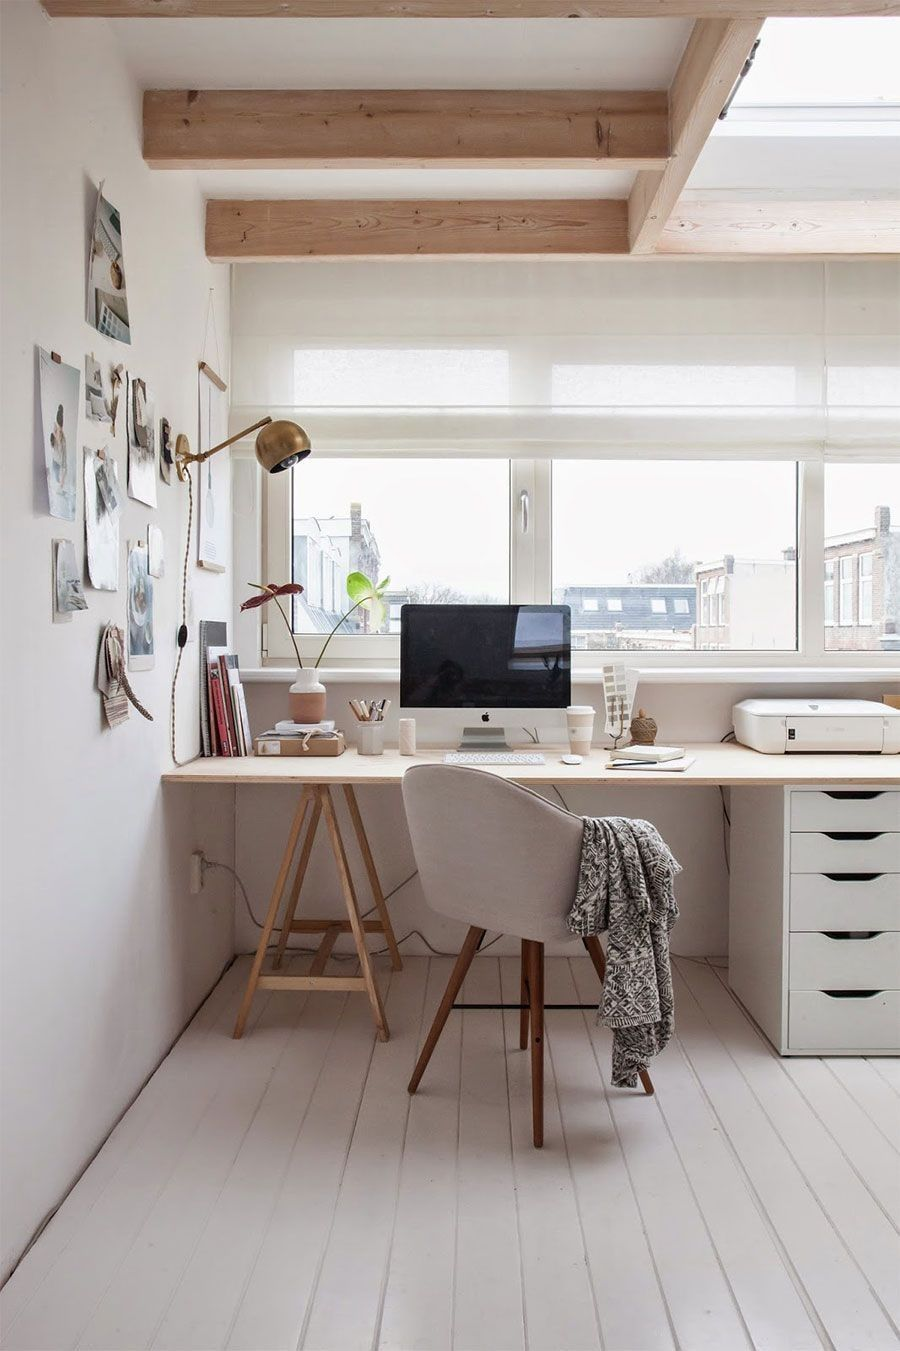 Computer Desk: Large Photo Collection of Organizing the Workspace. Scandi chairs for Contemporary styled home office at the window